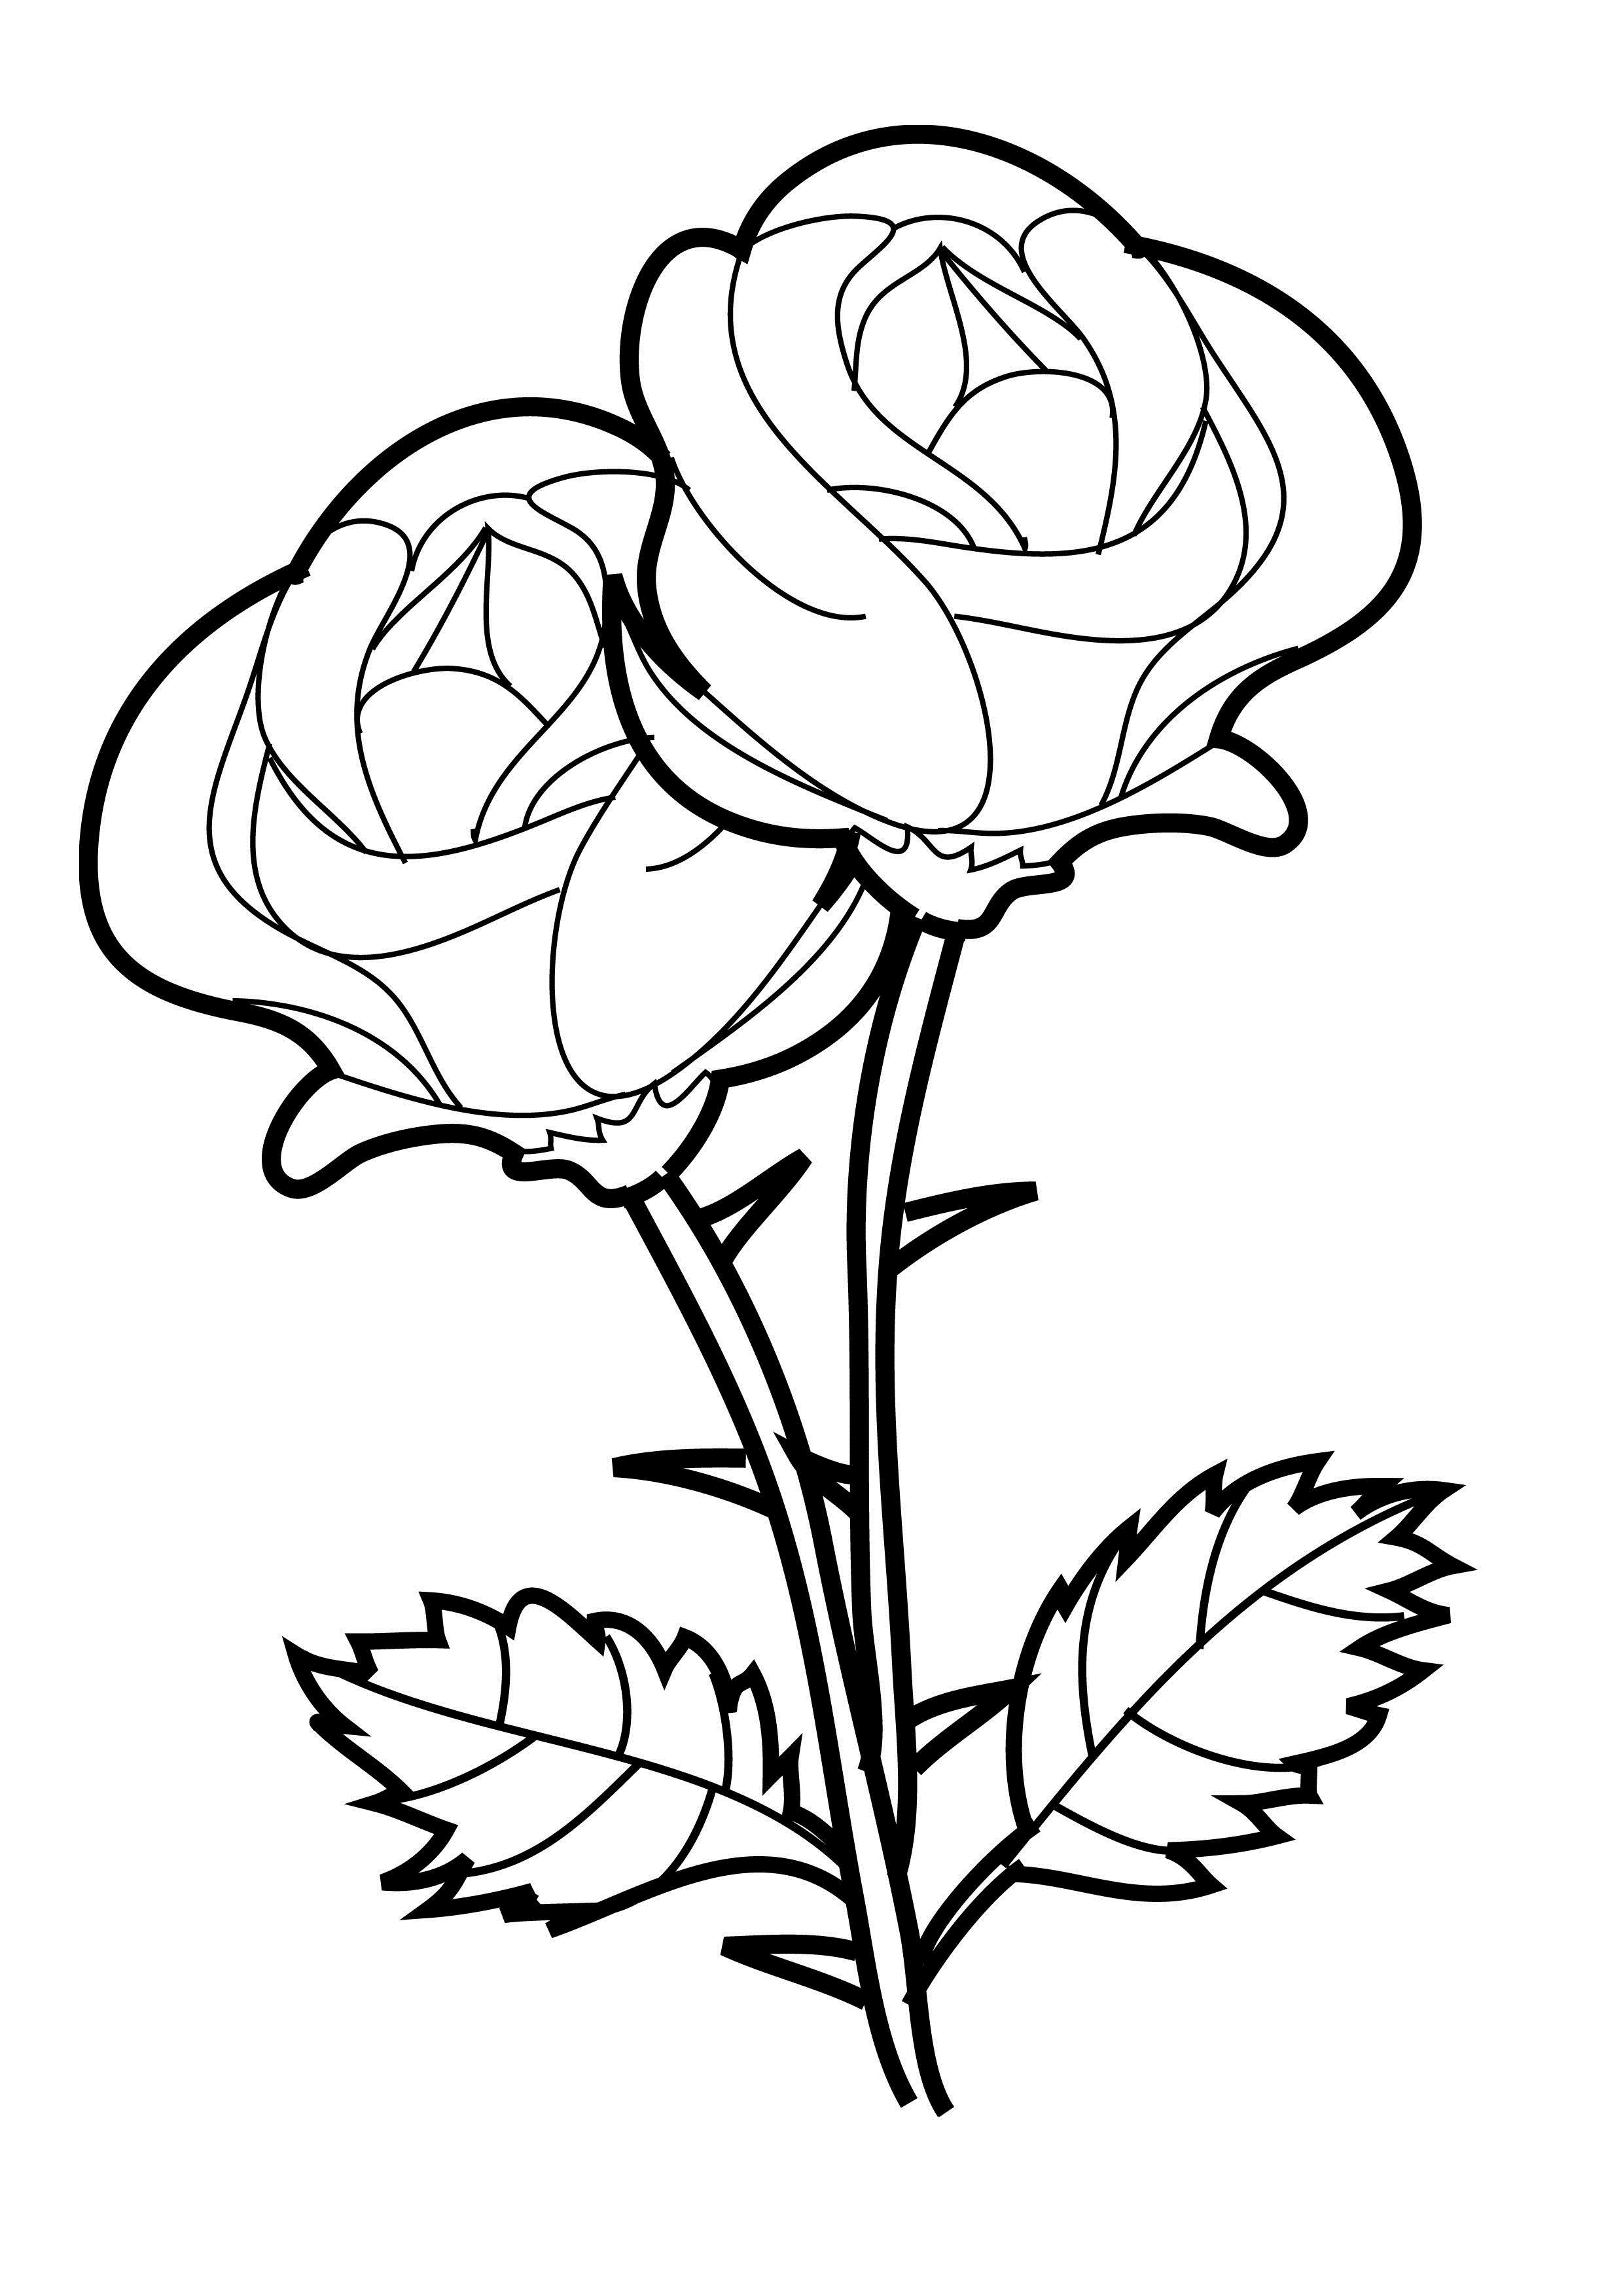 rose coloring pages printable free free roses printable adult coloring page the graphics fairy rose coloring pages free printable